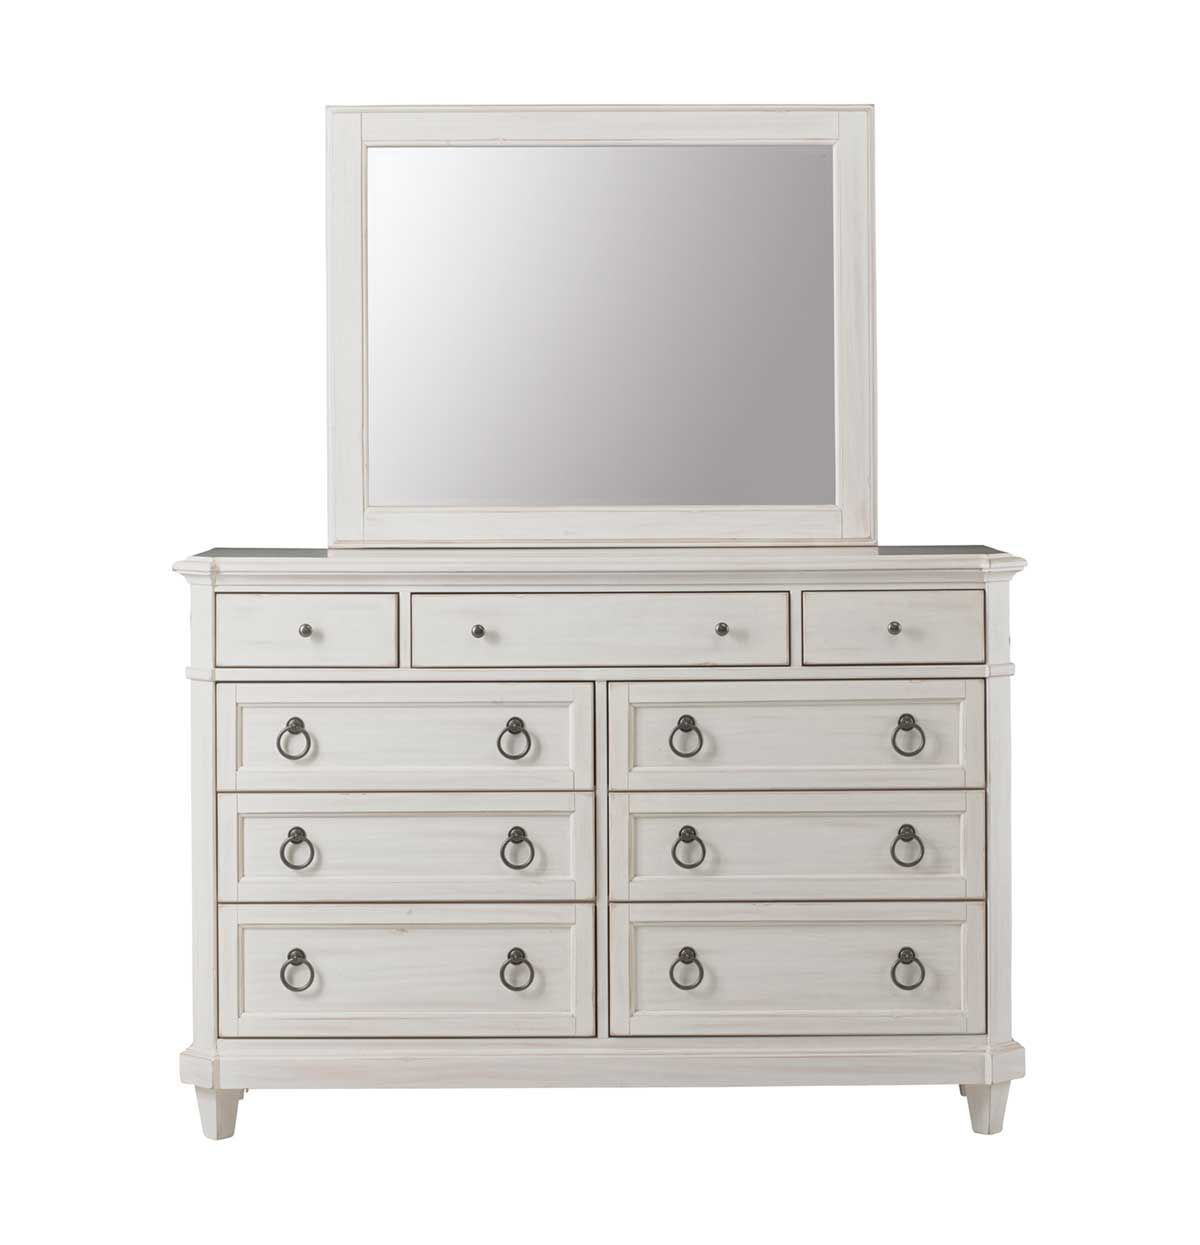 Augusta Ii Dresser Mirror Badcock Home Furniture More